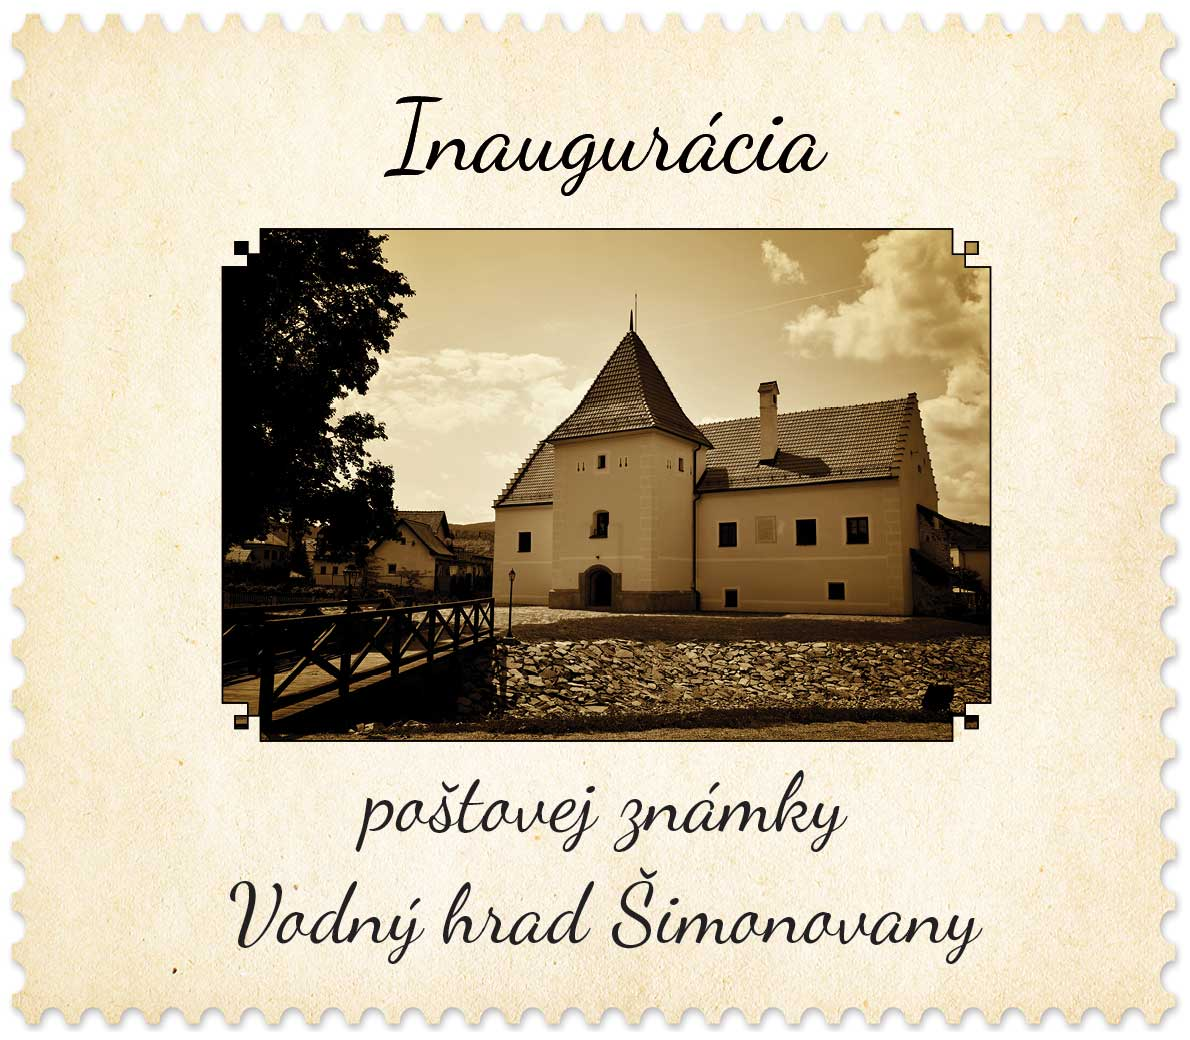 Stamp Inaugurations Ceremonial inauguration of the postage stamp Beauties of our Homeland: Manor-house Water Castle in Simonovany